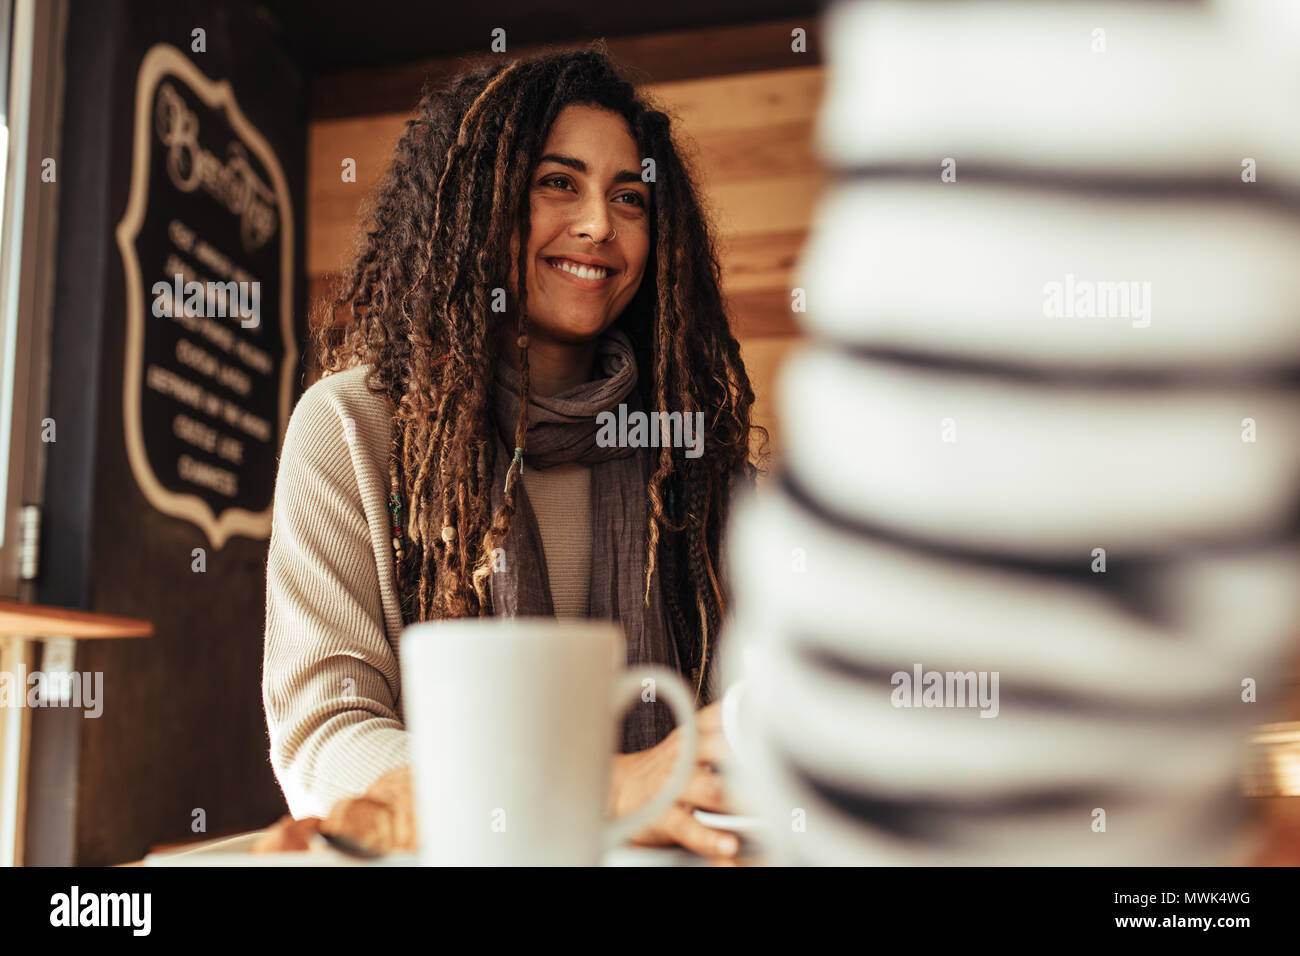 Smiling woman sitting in a restaurant talking to her friend. Friends sitting at a cafe with coffee on the table. - Stock Image